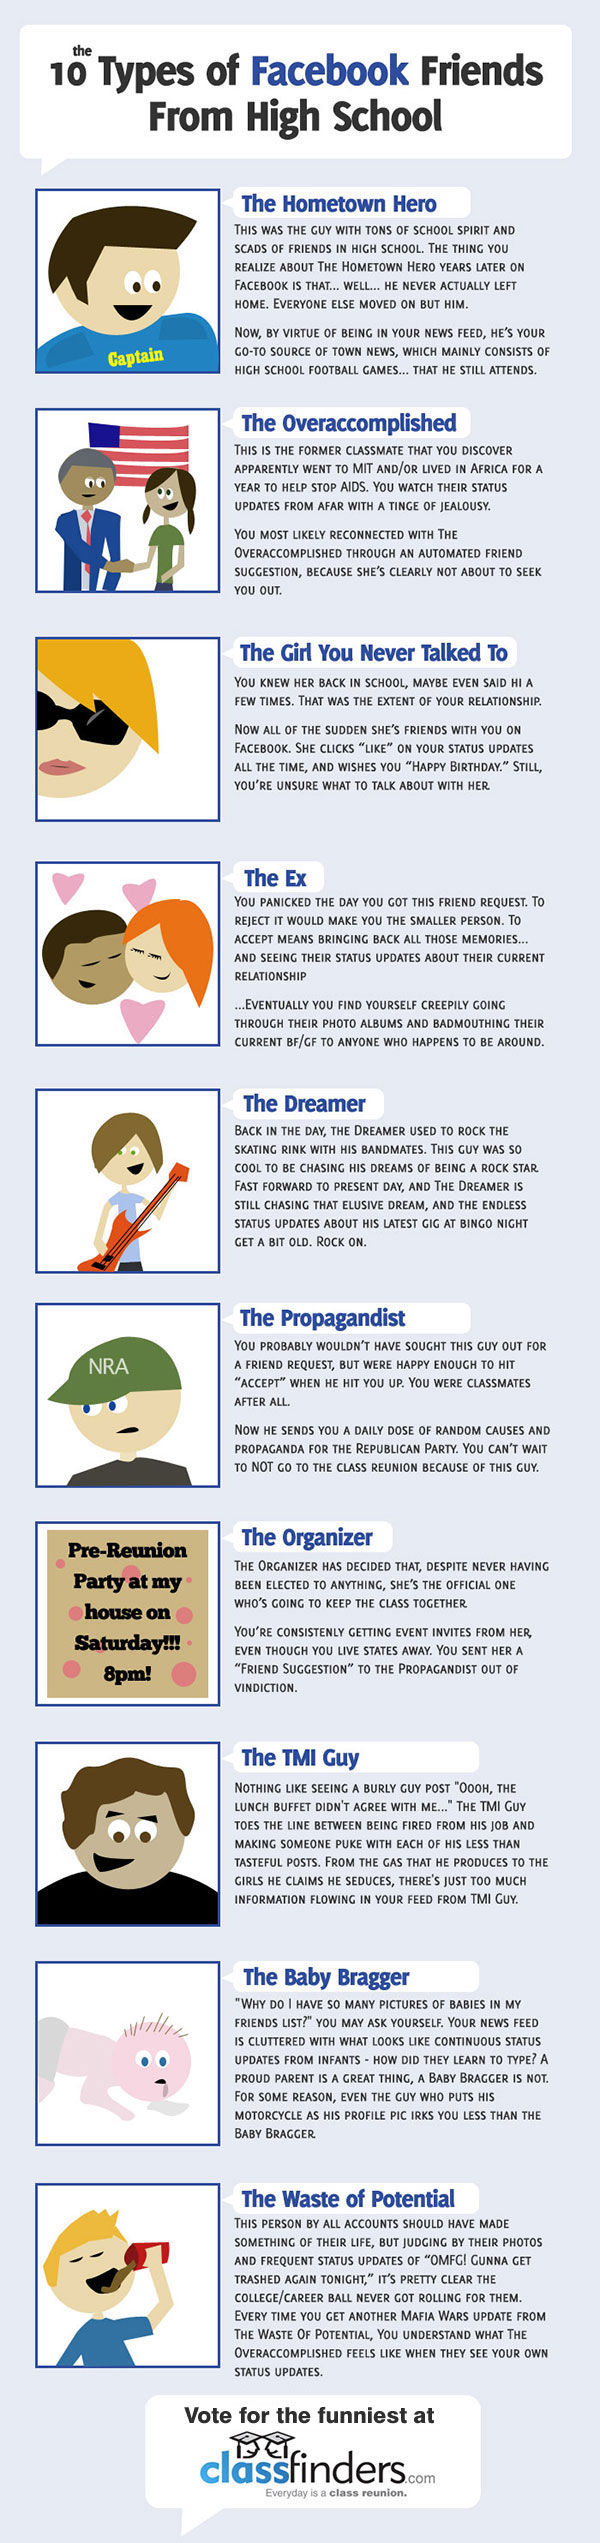 Facebook Friend Types Infographic